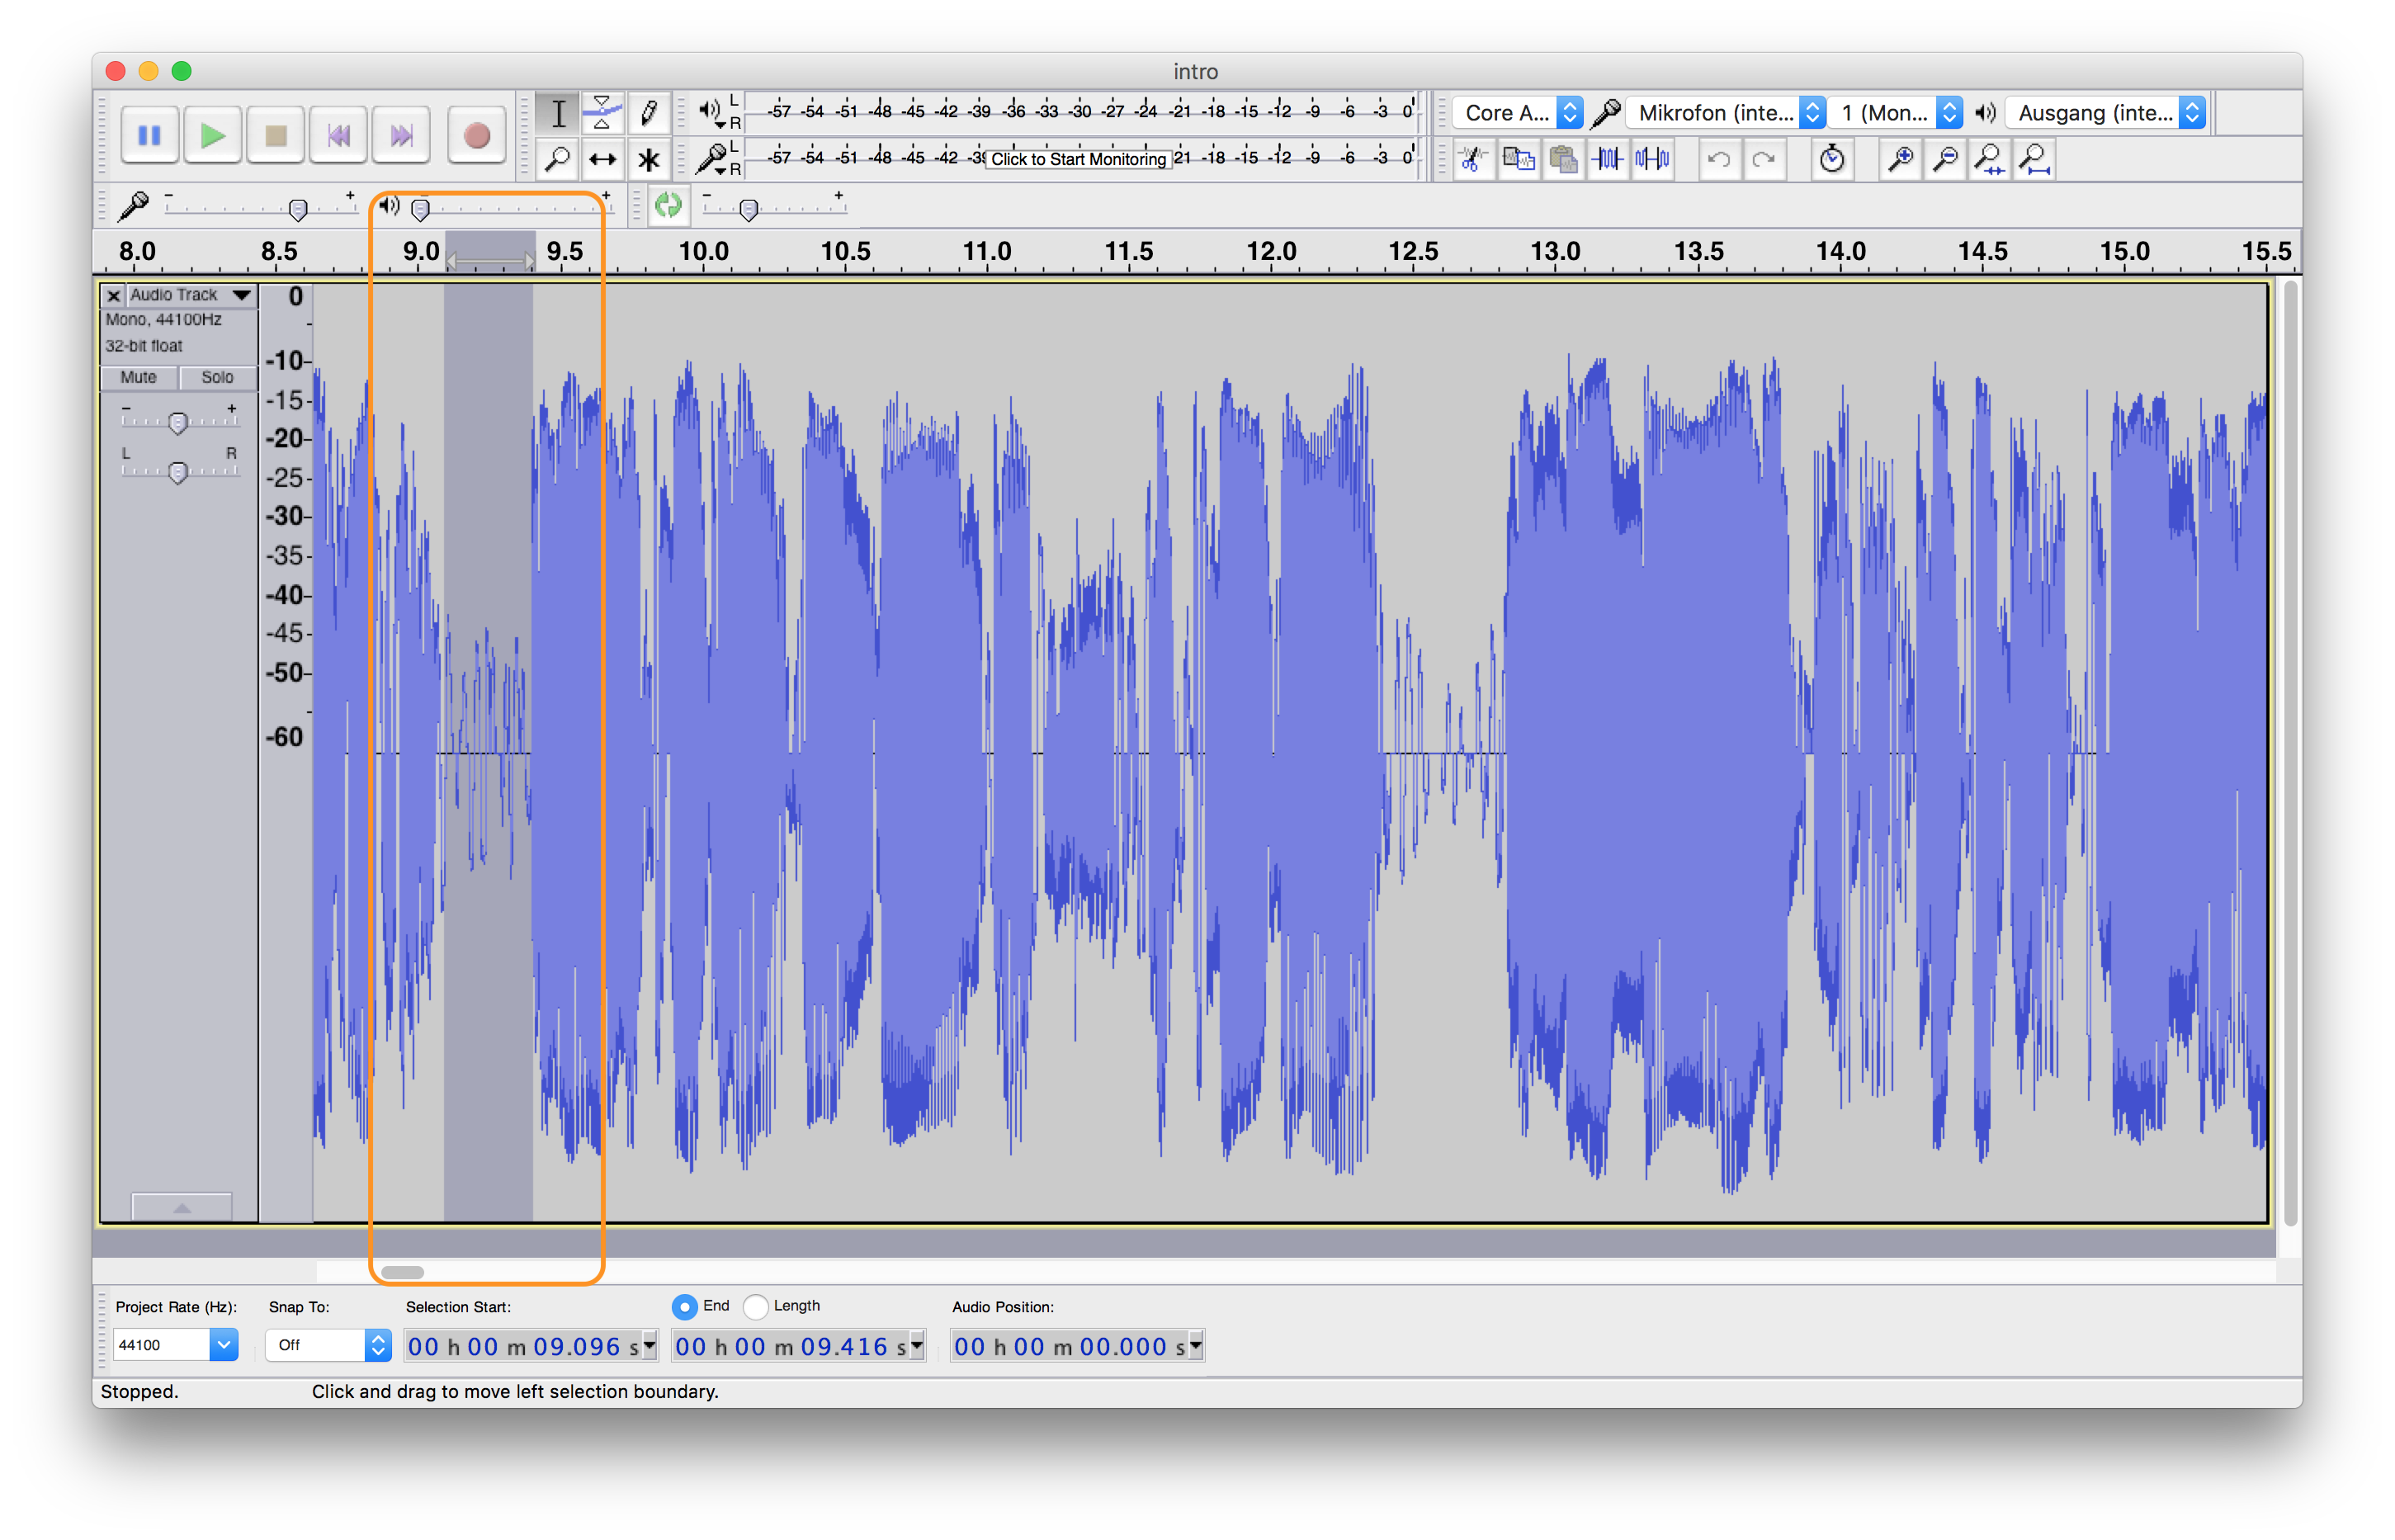 Finding a maximum volume level for applying Audacity's Noise Gate